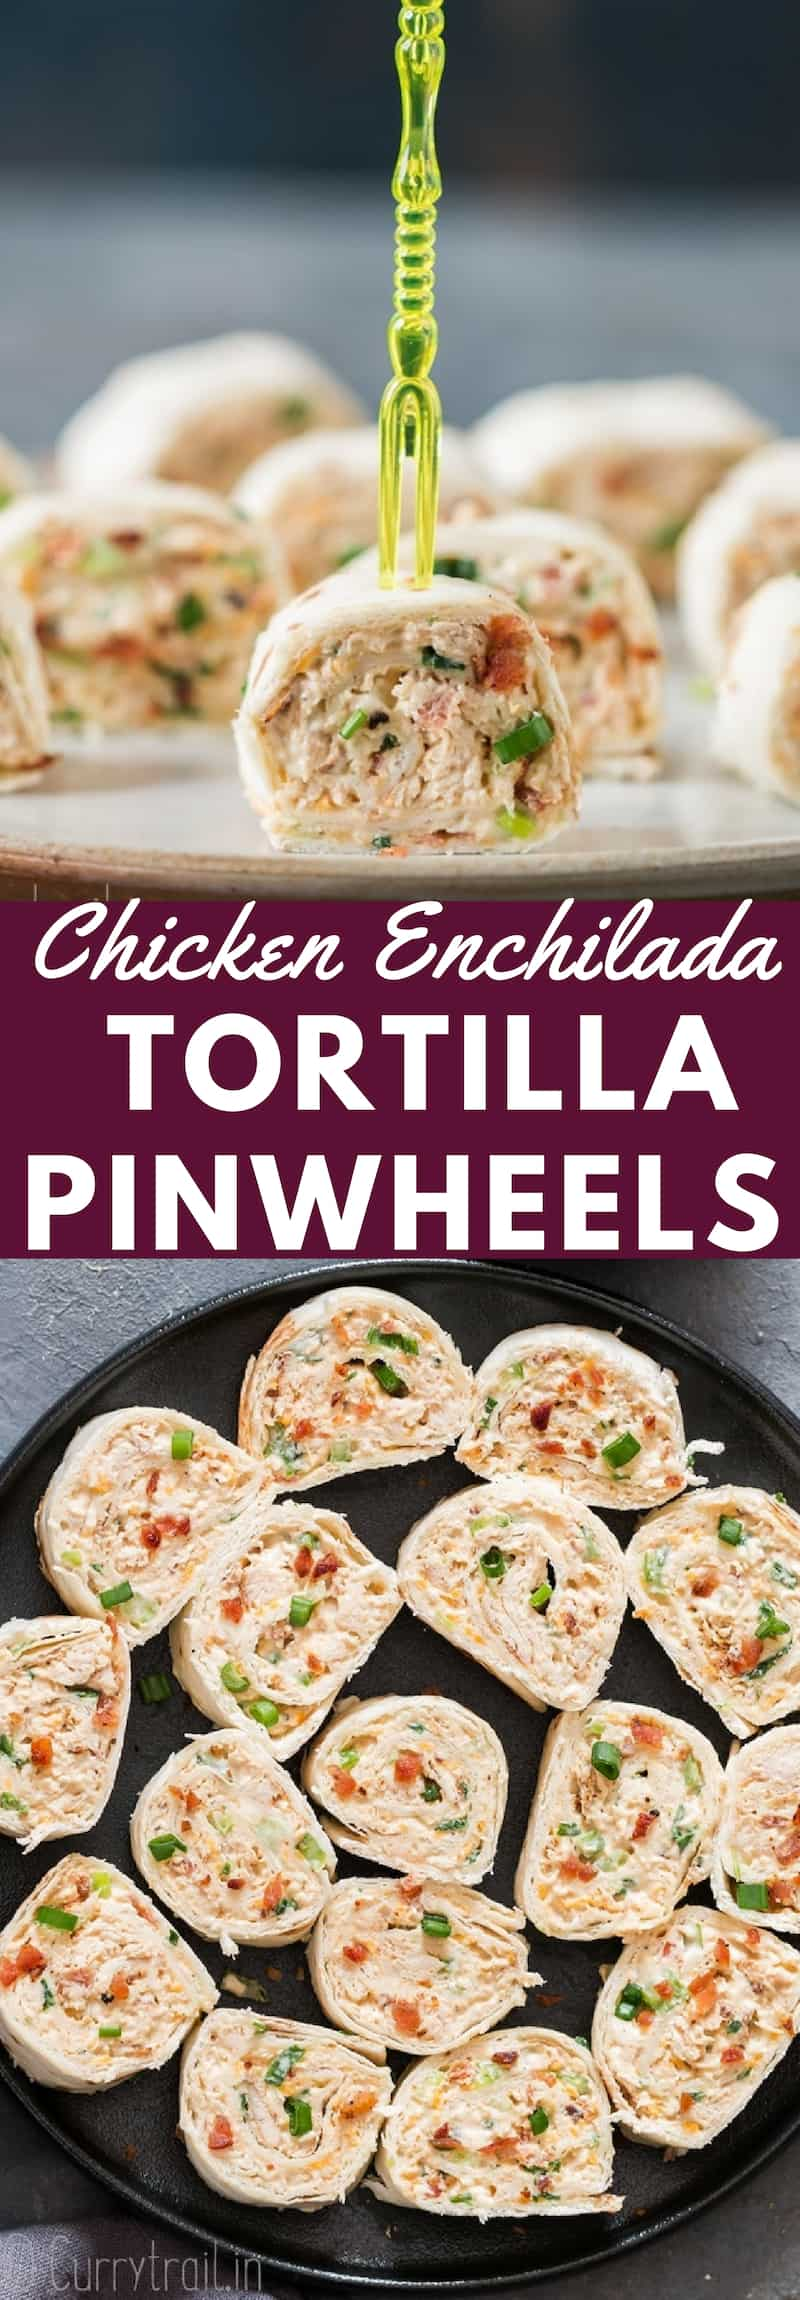 Chicken enchilada tortilla roll-ups are perfect appetizers for game day, parties or any gatherings that you can put together easily